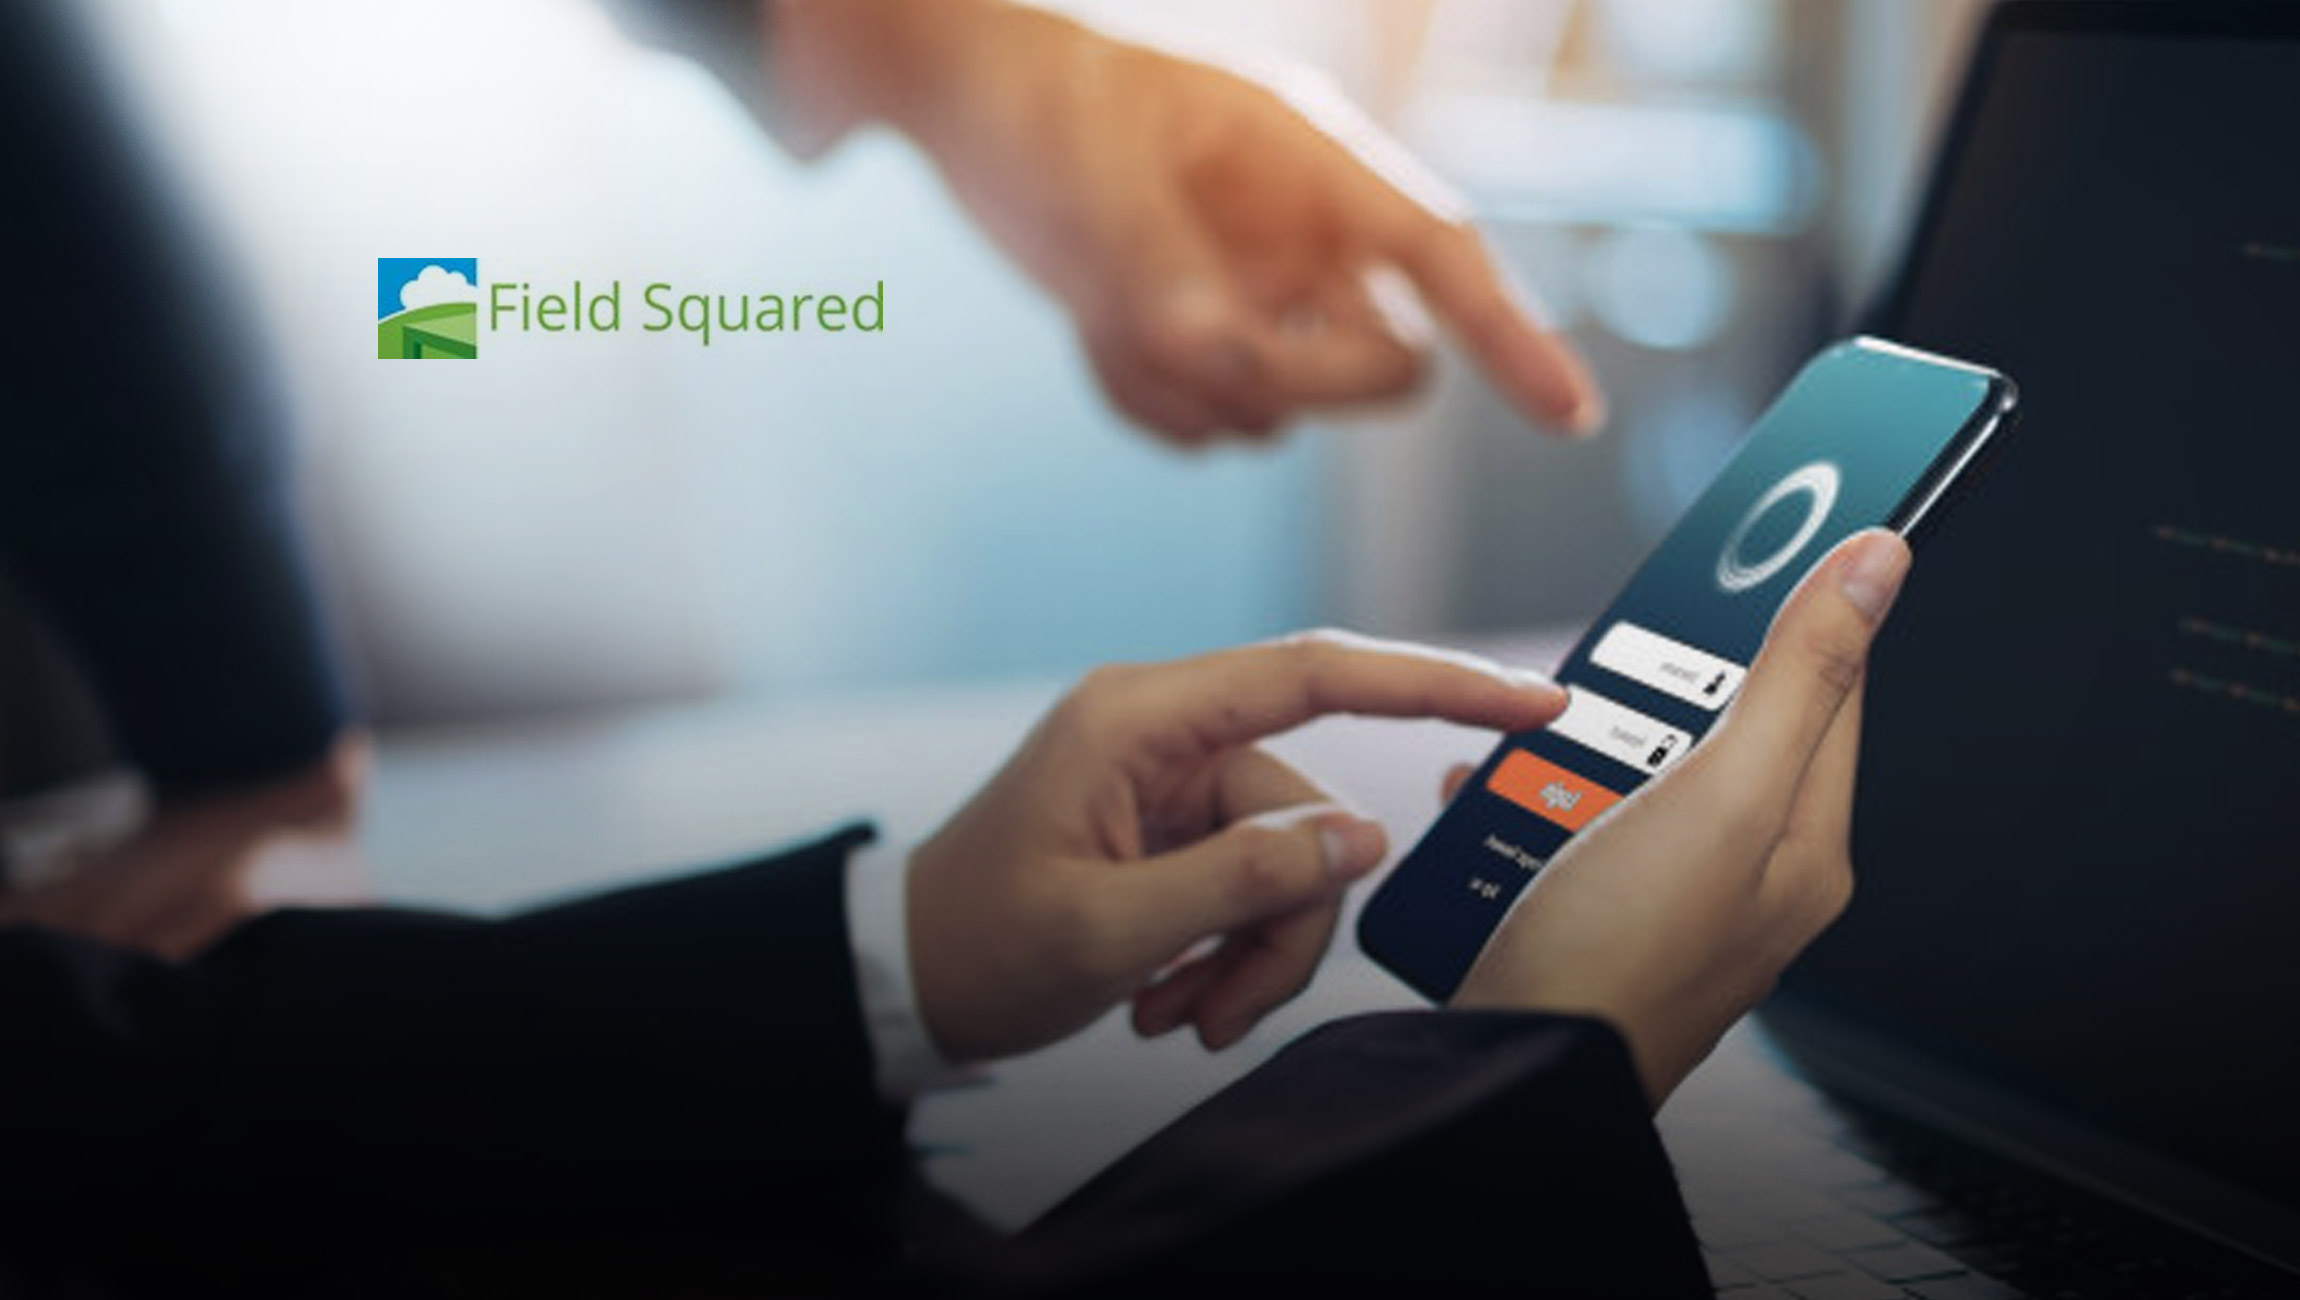 Field Squared Named a Top Ten Most Promising Field Service Solution Provider by CIOReview